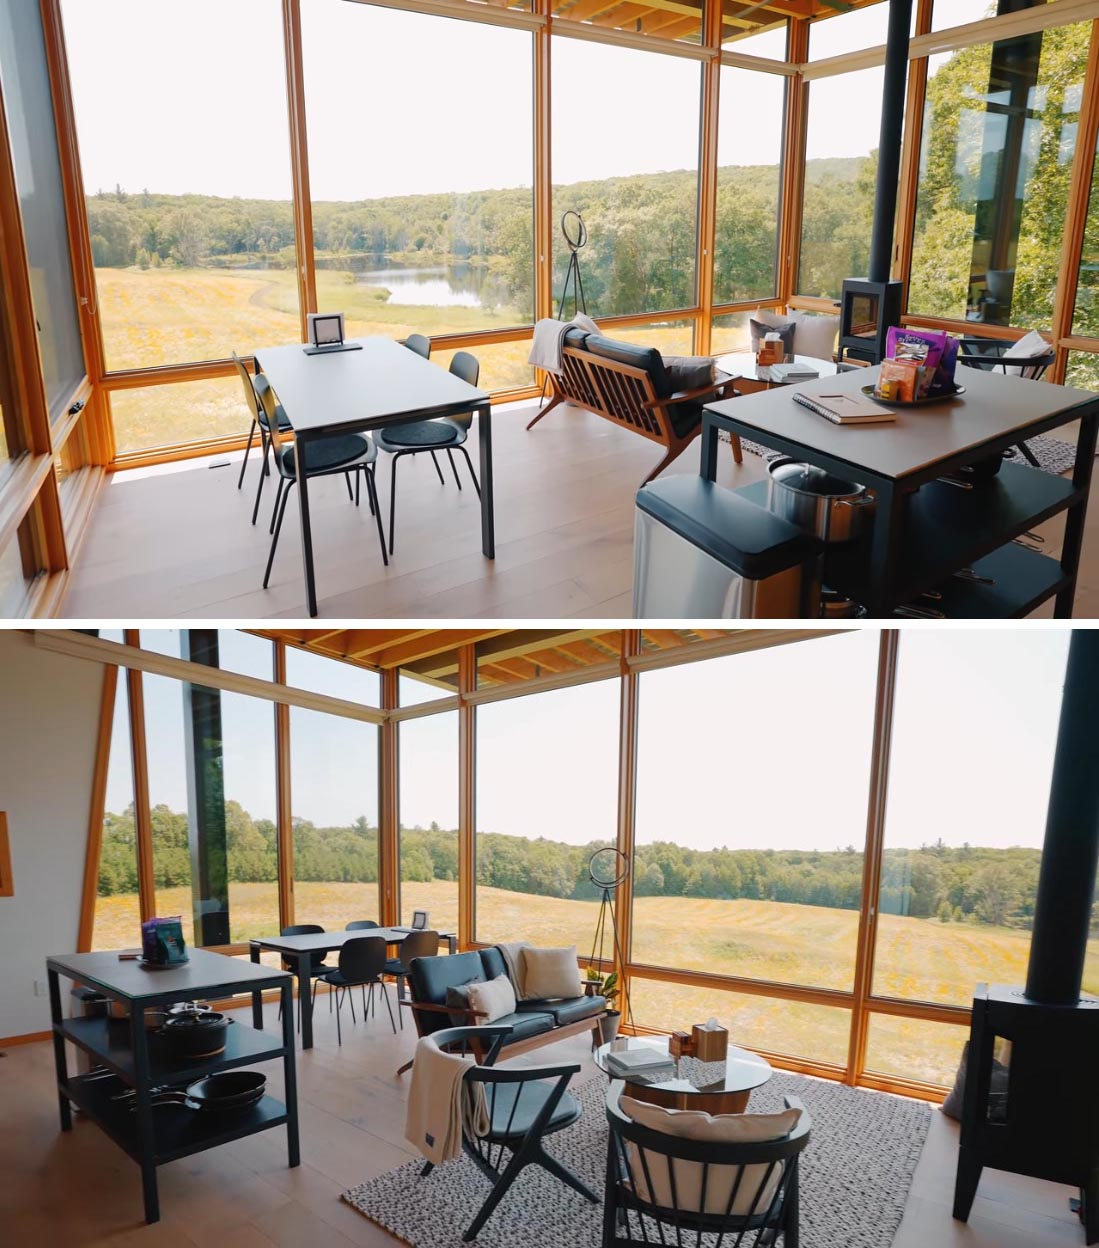 The upper level of this modern cabin is home to an open plan glass-walled living room, dining area, and small kitchen.